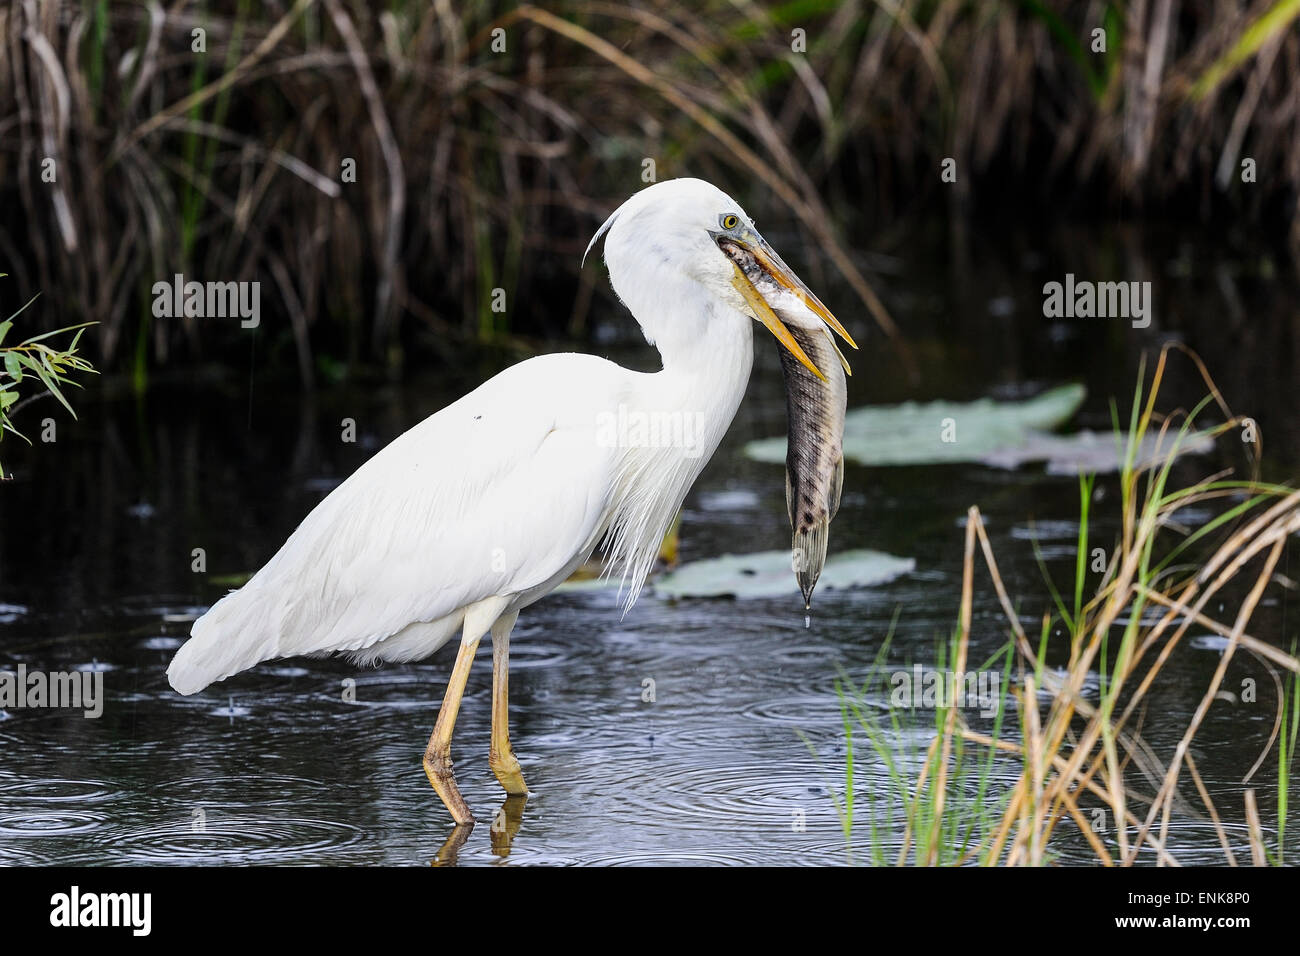 great white heron (a.k.a. great blue heron), everglades, florida - Stock Image